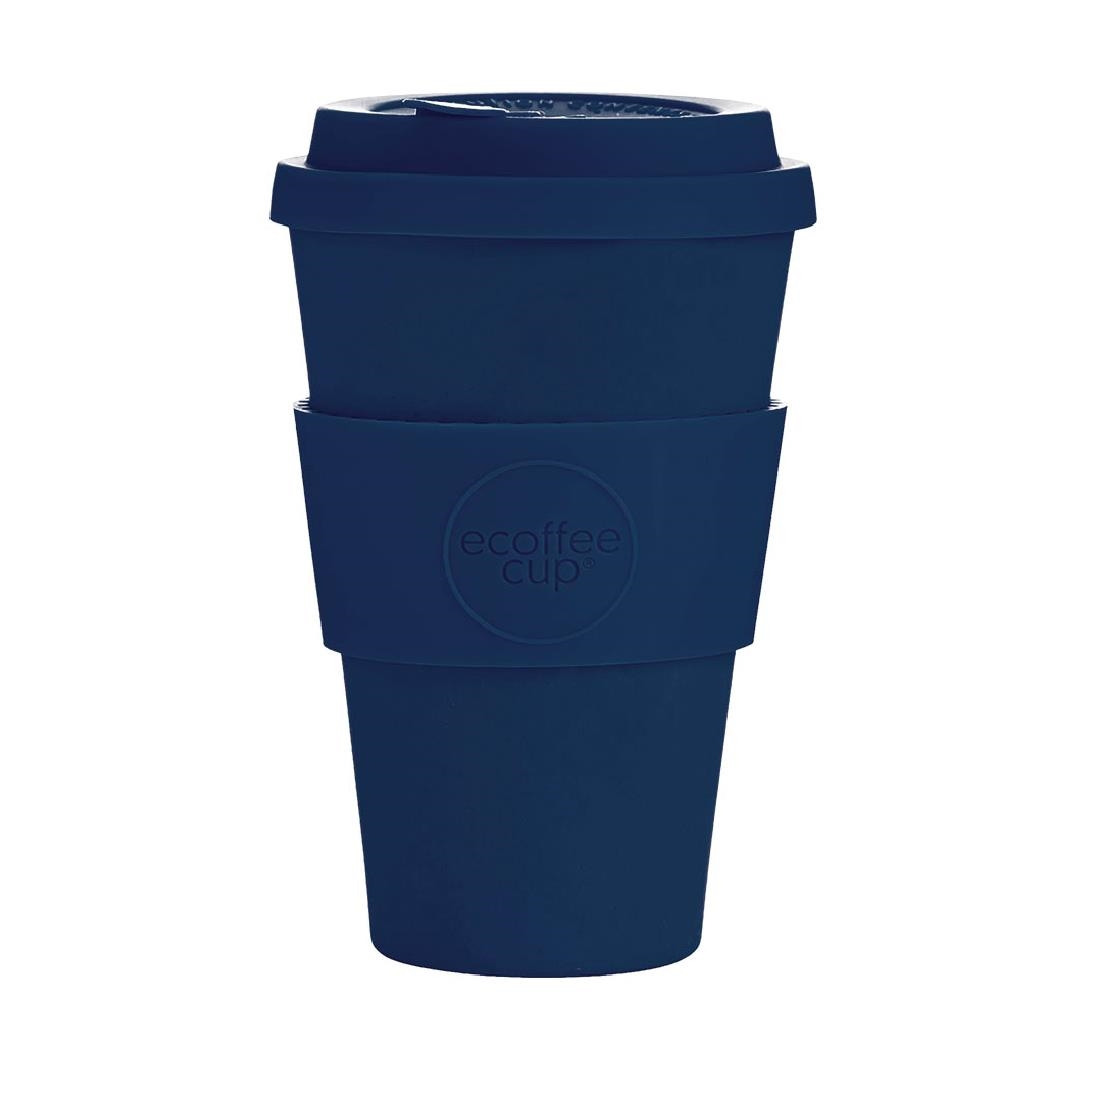 Image of Ecoffee Cup Bamboo Reusable Coffee Cup Dark Energy Navy 14oz